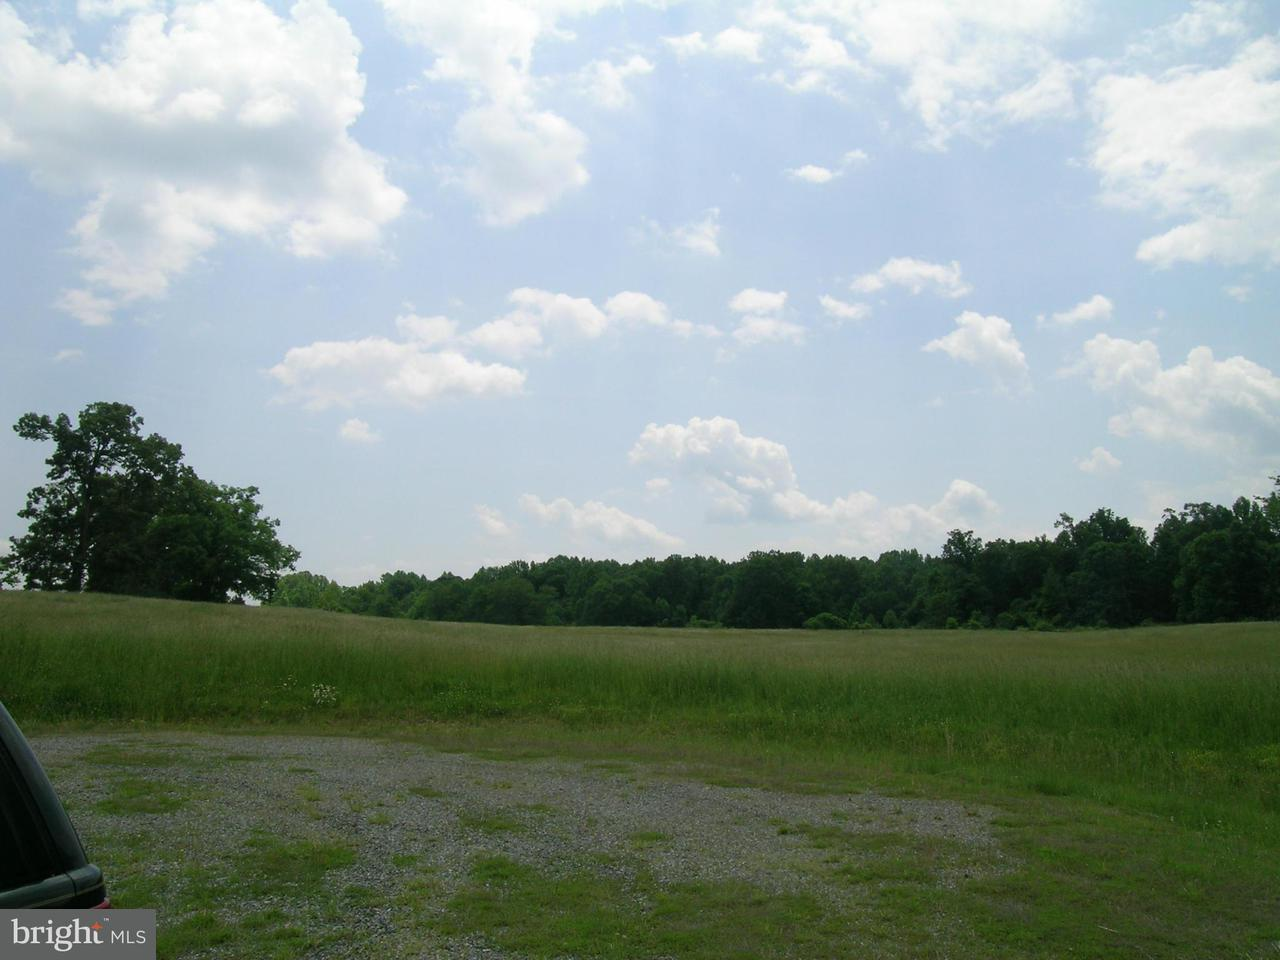 Land for Sale at 18 Not On File Bumpass, Virginia 23024 United States